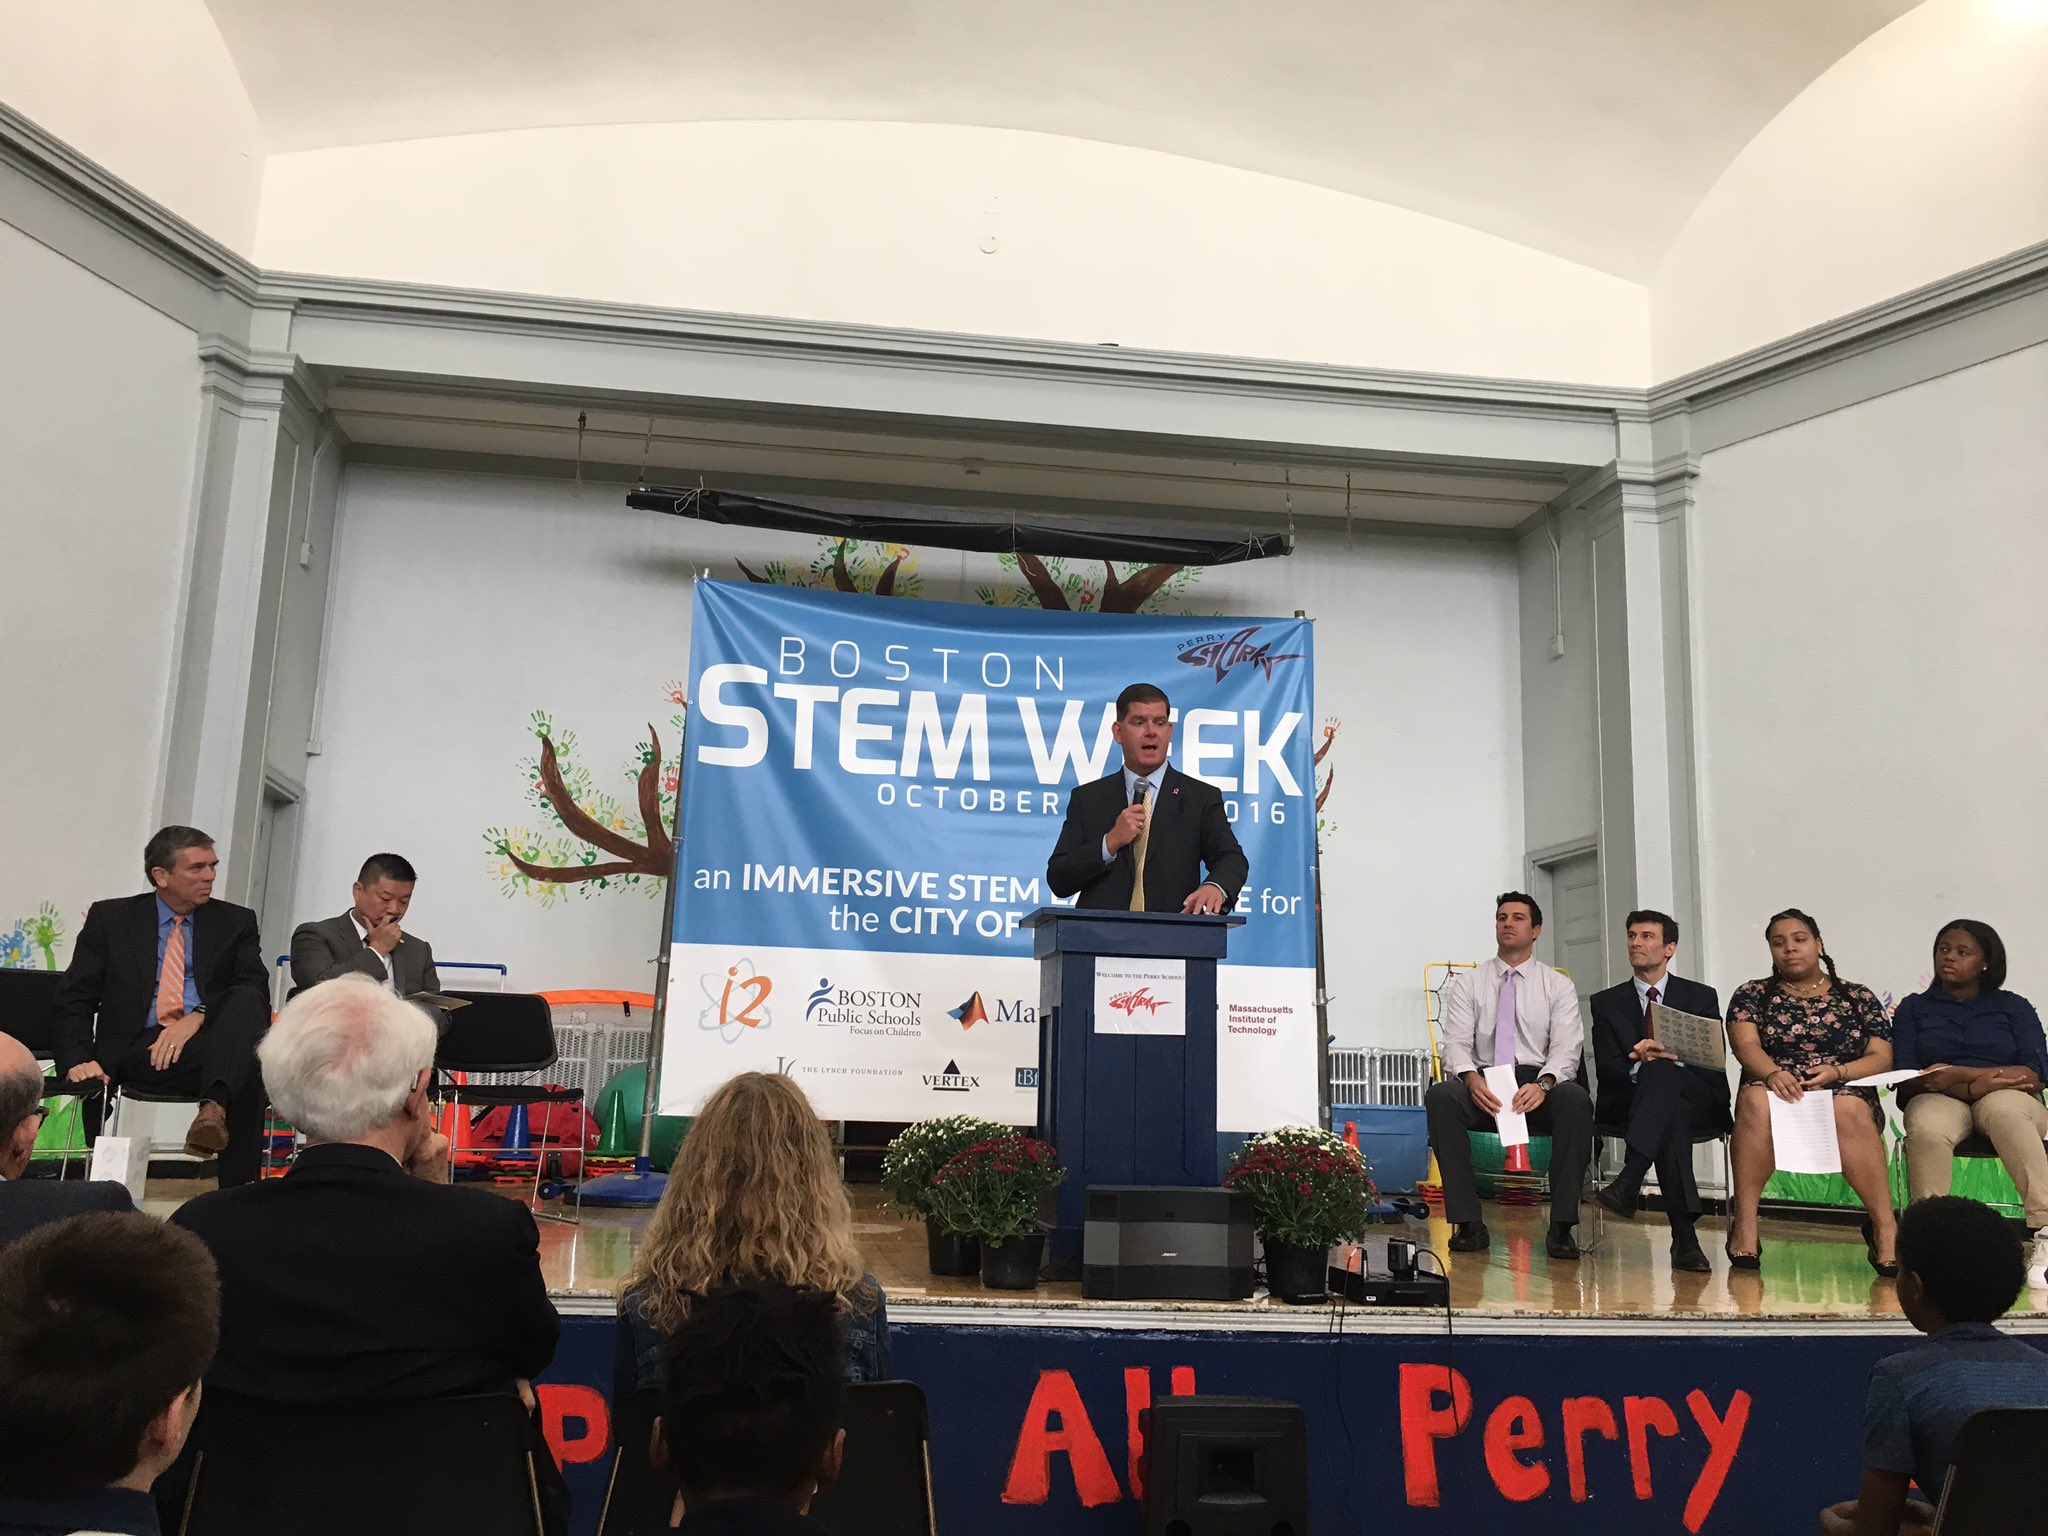 Mayor @marty_walsh kicks off @i2Learning #BostonSTEMWeek at the Perry school. https://t.co/HiehAS9m46